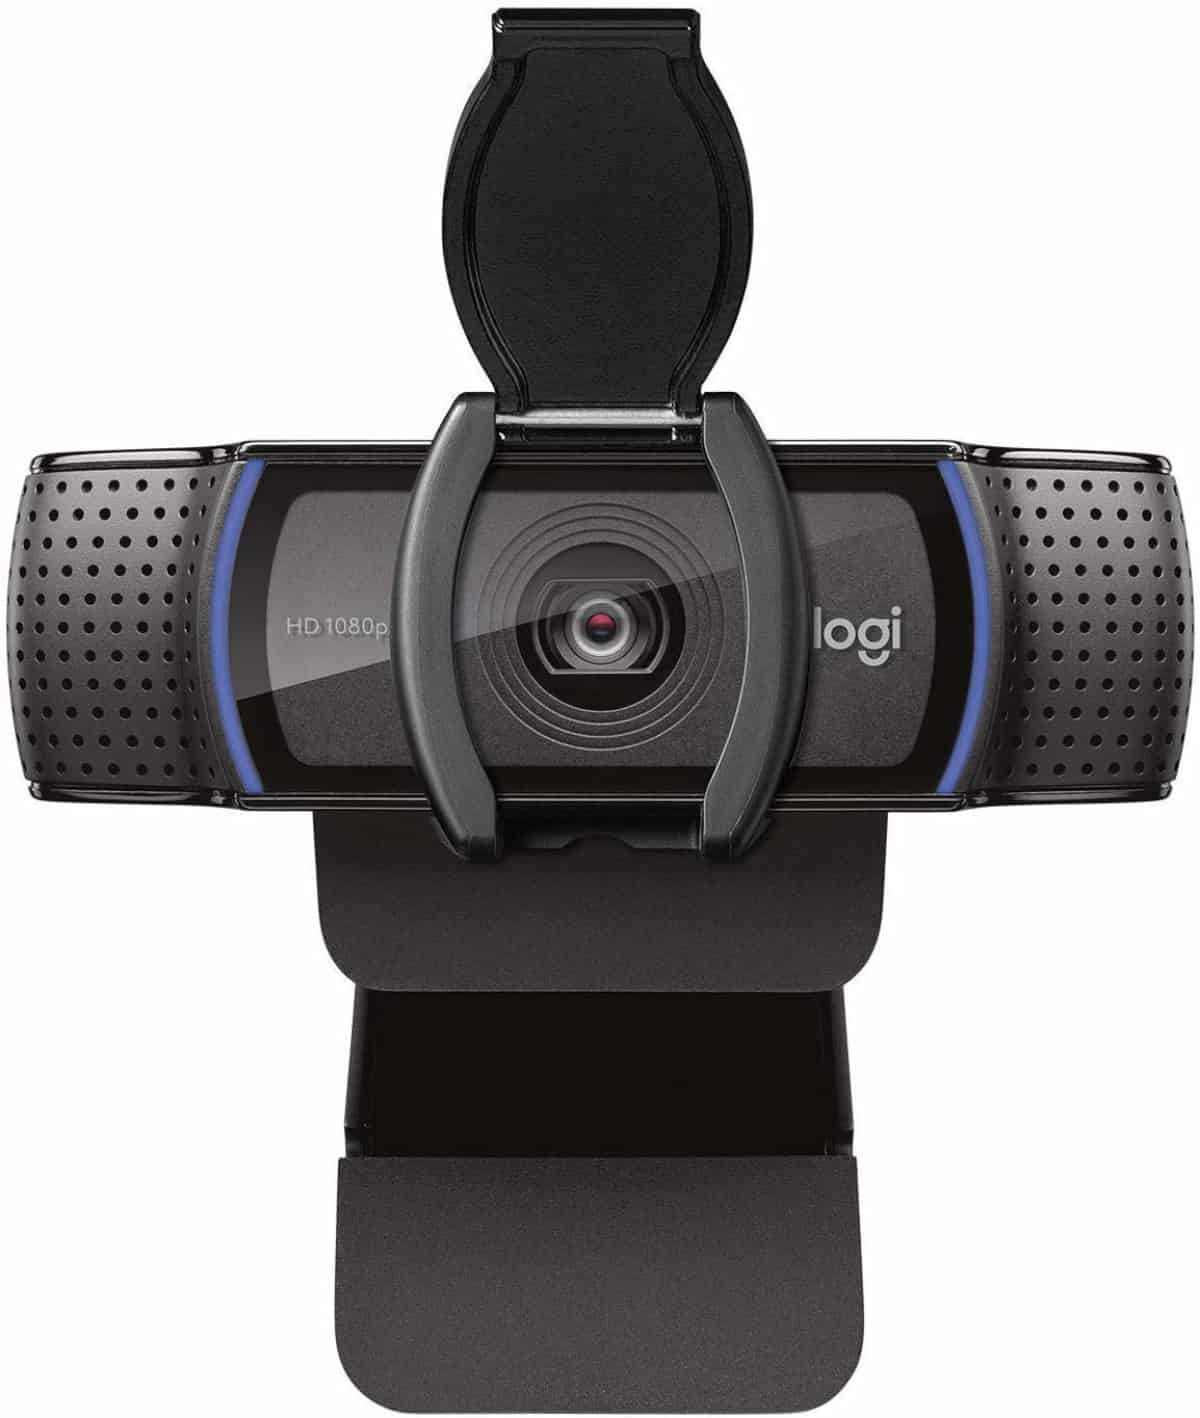 whats the best webcam for linux 2020 edition What's the Best Webcam for Linux? (2020 Edition)